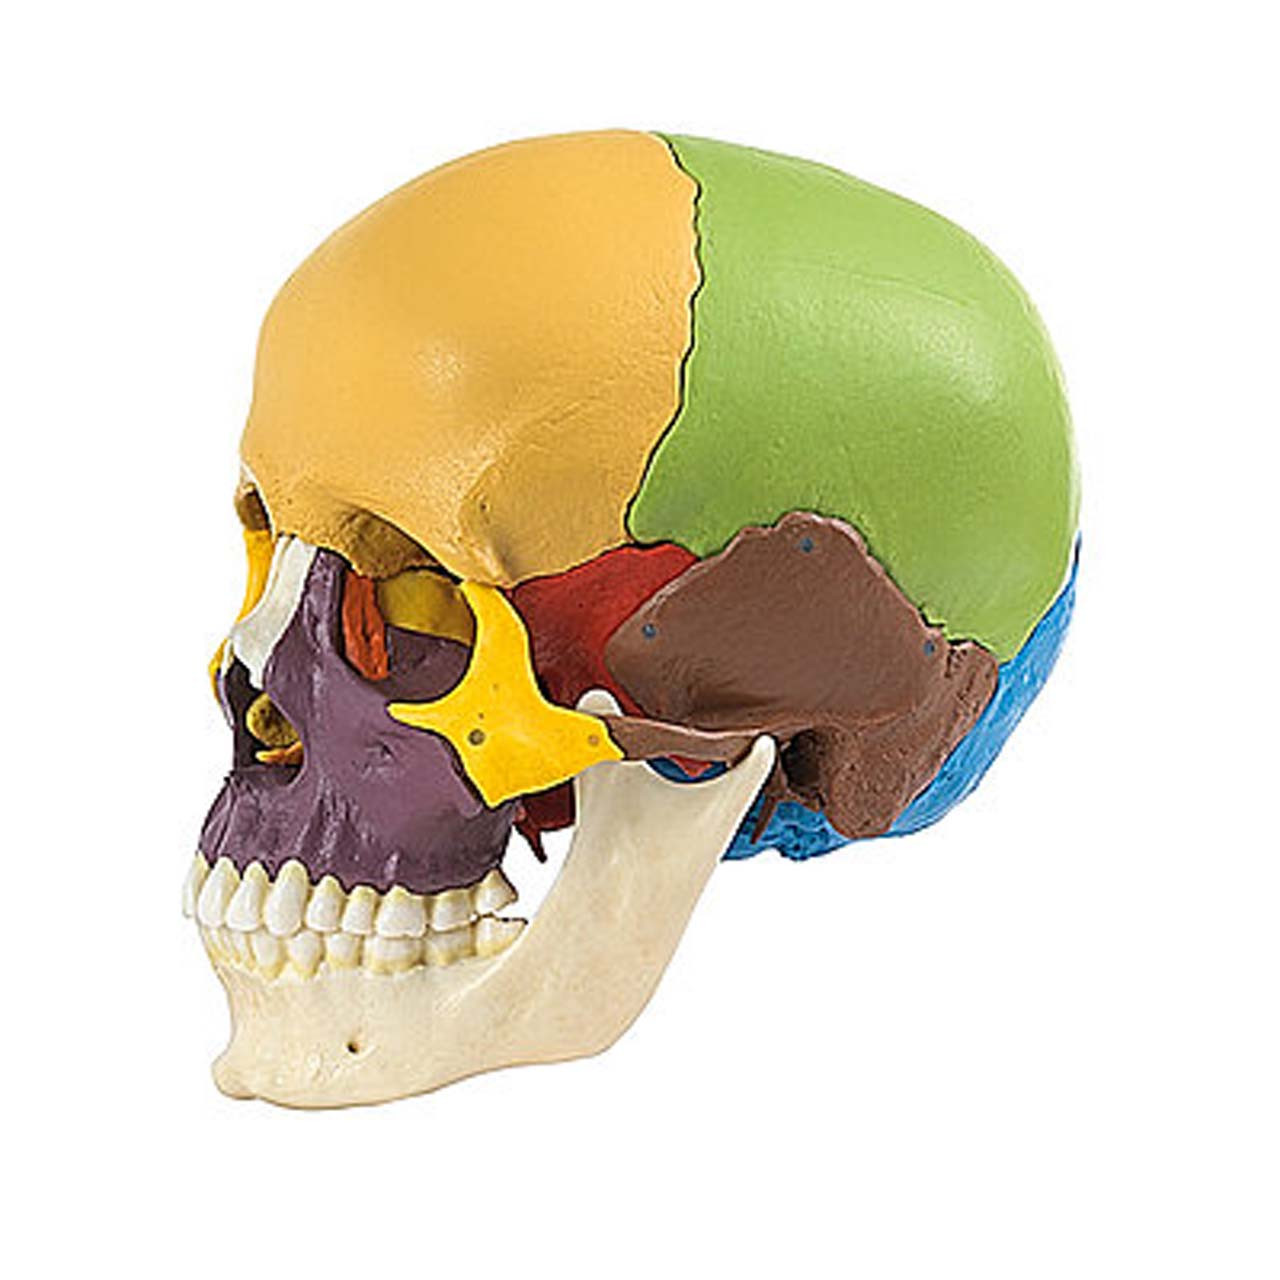 14-Part Coloured Model of the Human Skull